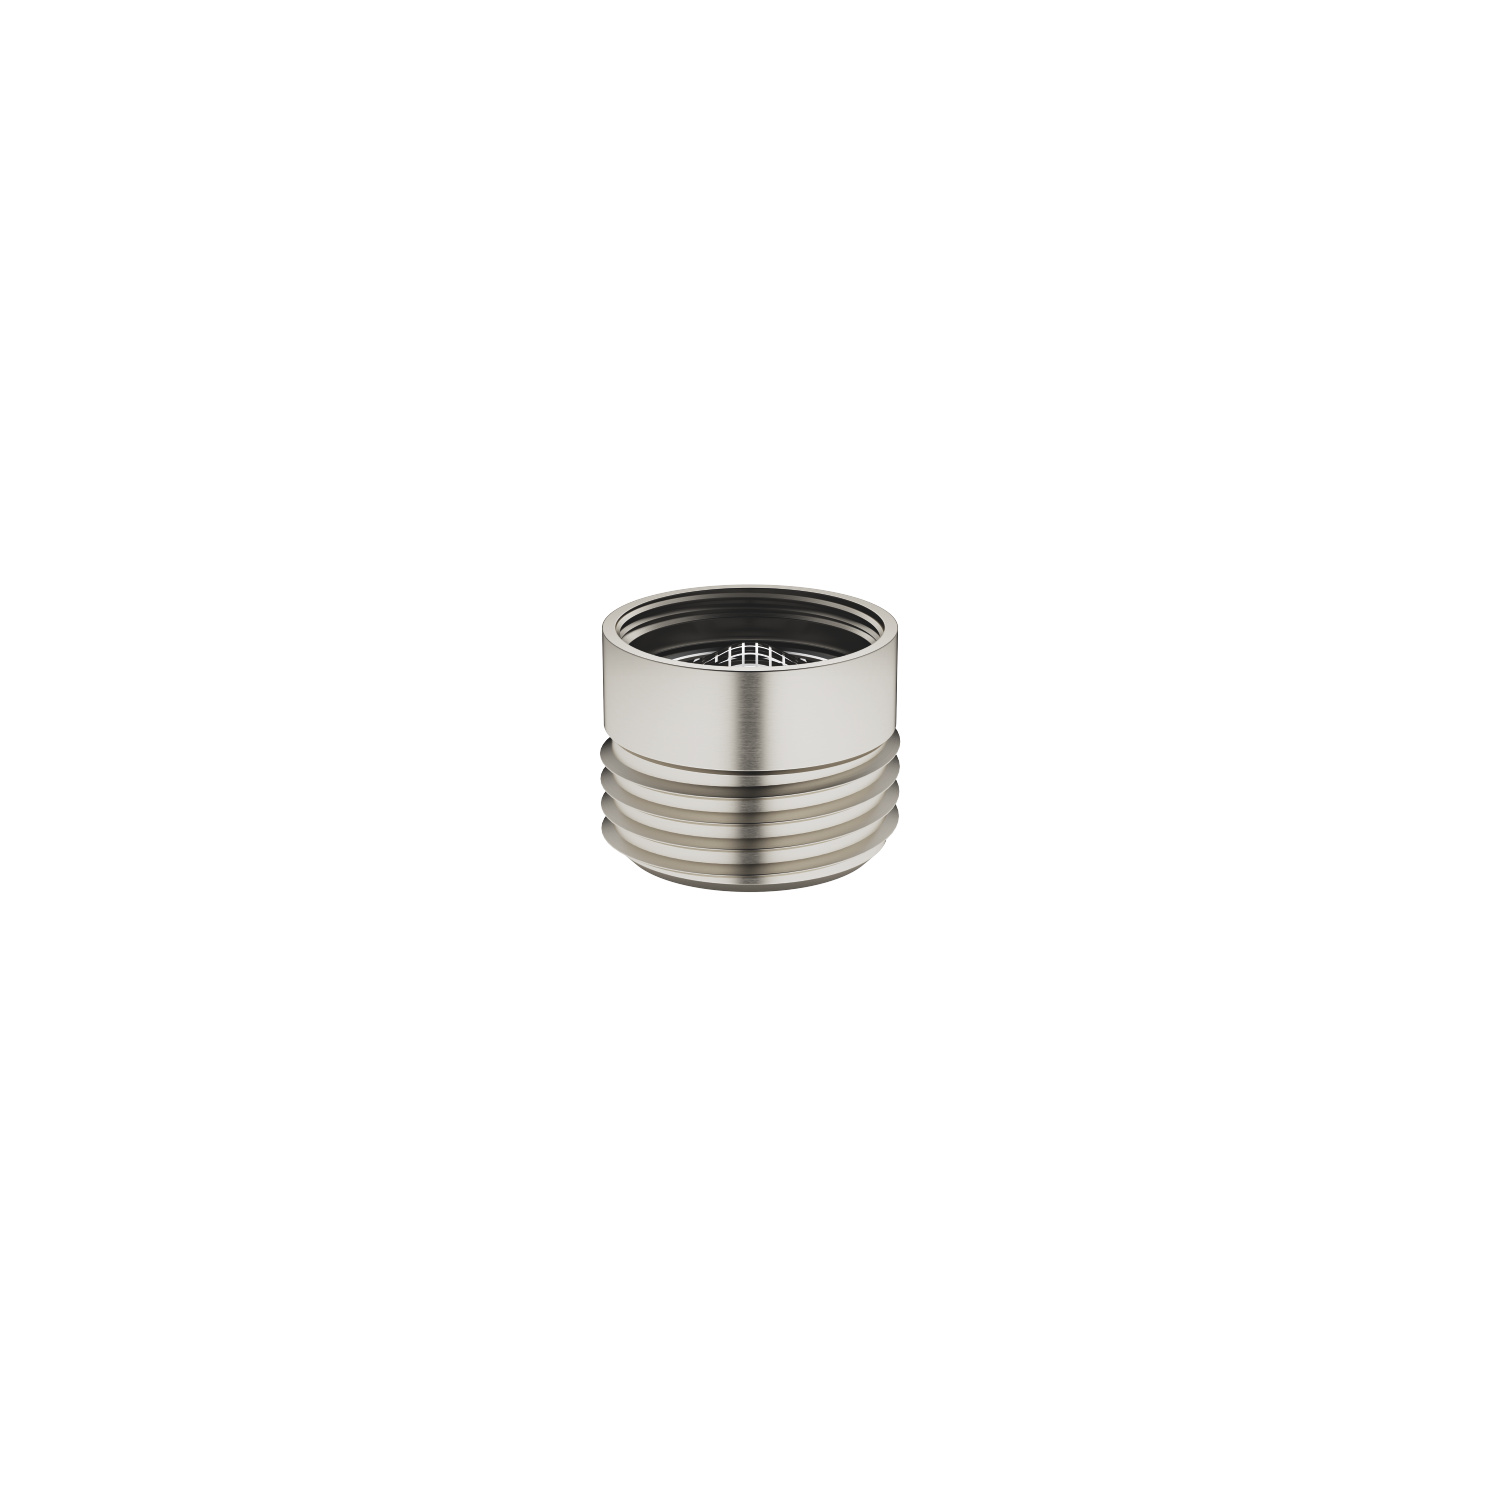 "Adapter for shower outlet 3/8"" x 1/2"" - platinum matt"